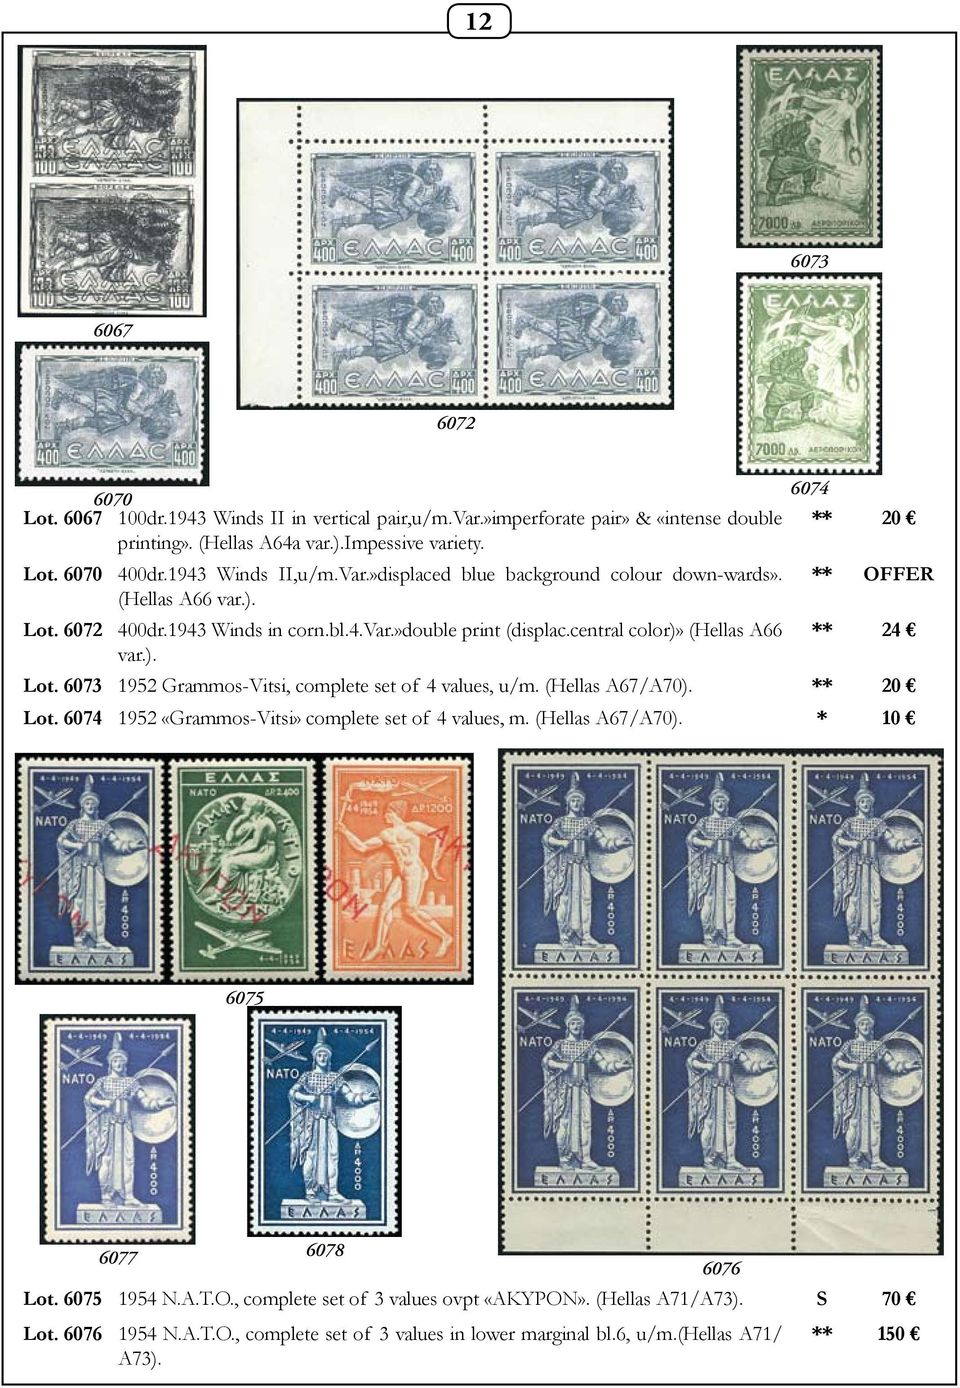 central color)» (Hellas A66 ** 24 var.). Lot. 6073 1952 Grammos-Vitsi, complete set of 4 values, u/m. (Hellas A67/A70). ** 20 Lot. 6074 1952 «Grammos-Vitsi» complete set of 4 values, m.